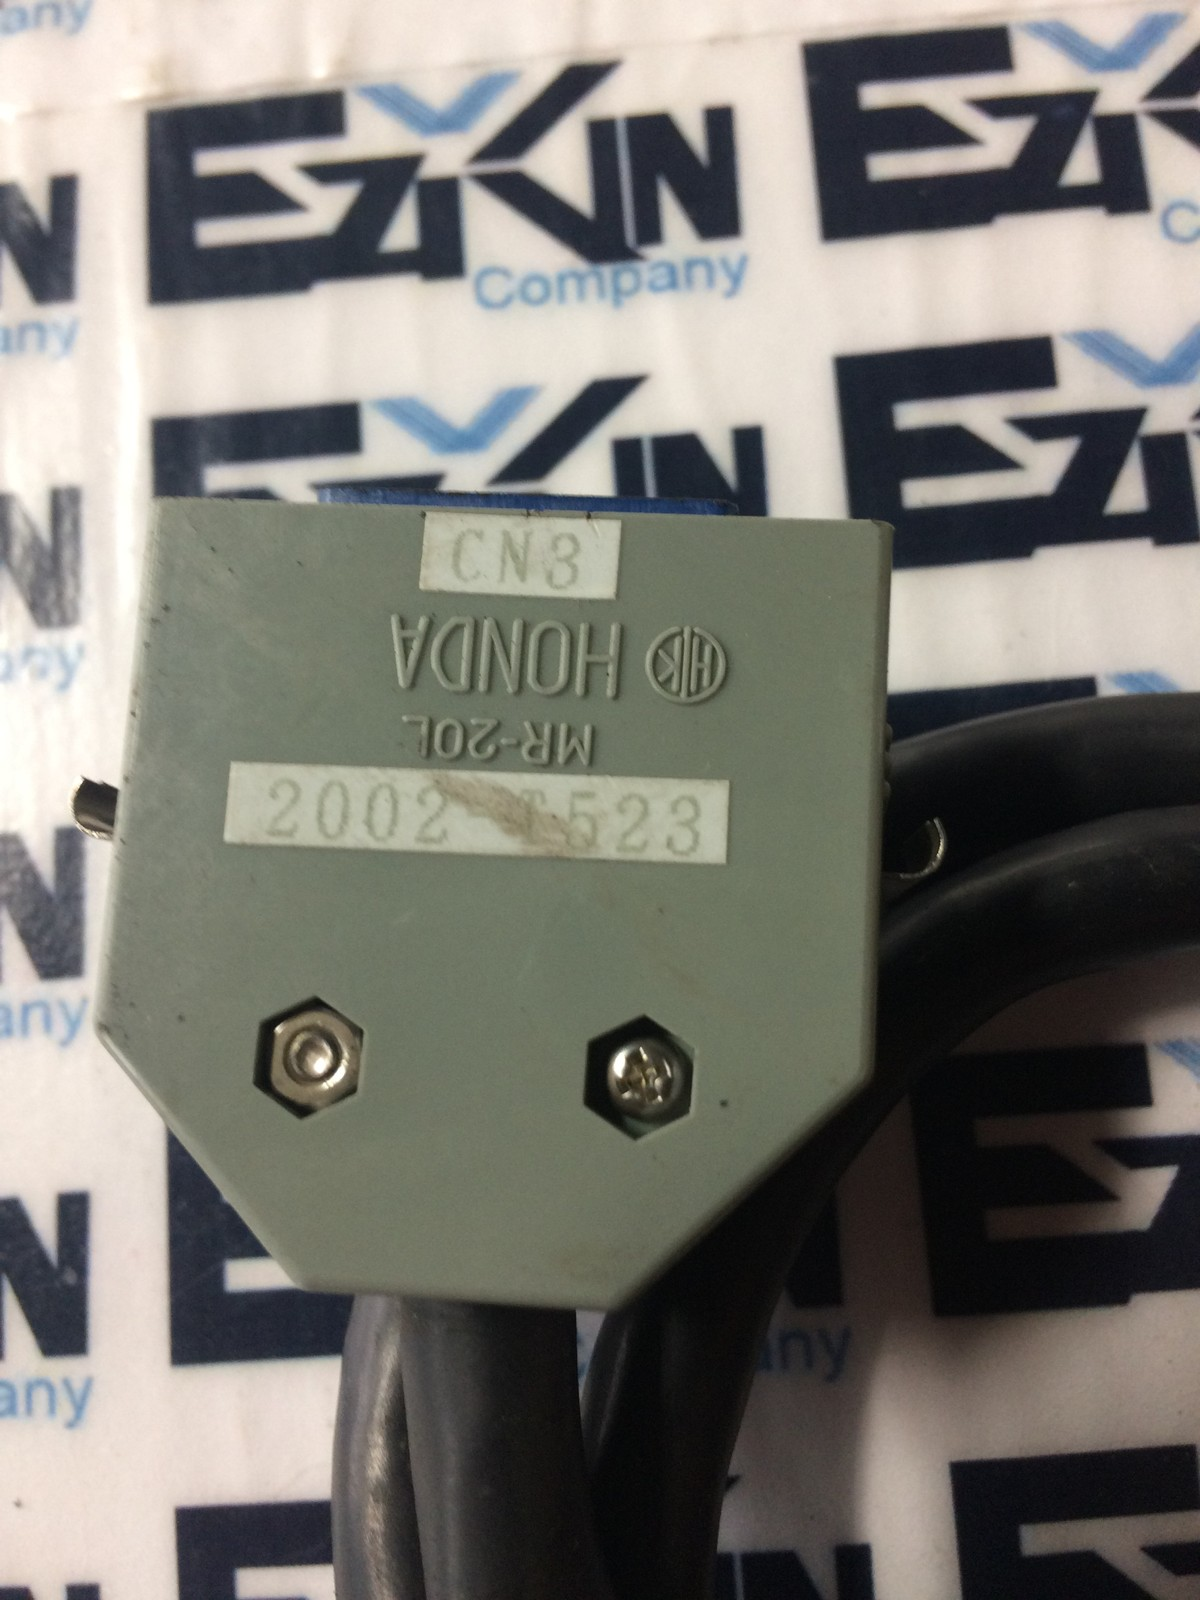 FANUC CABLE 2002-T523 / CD4